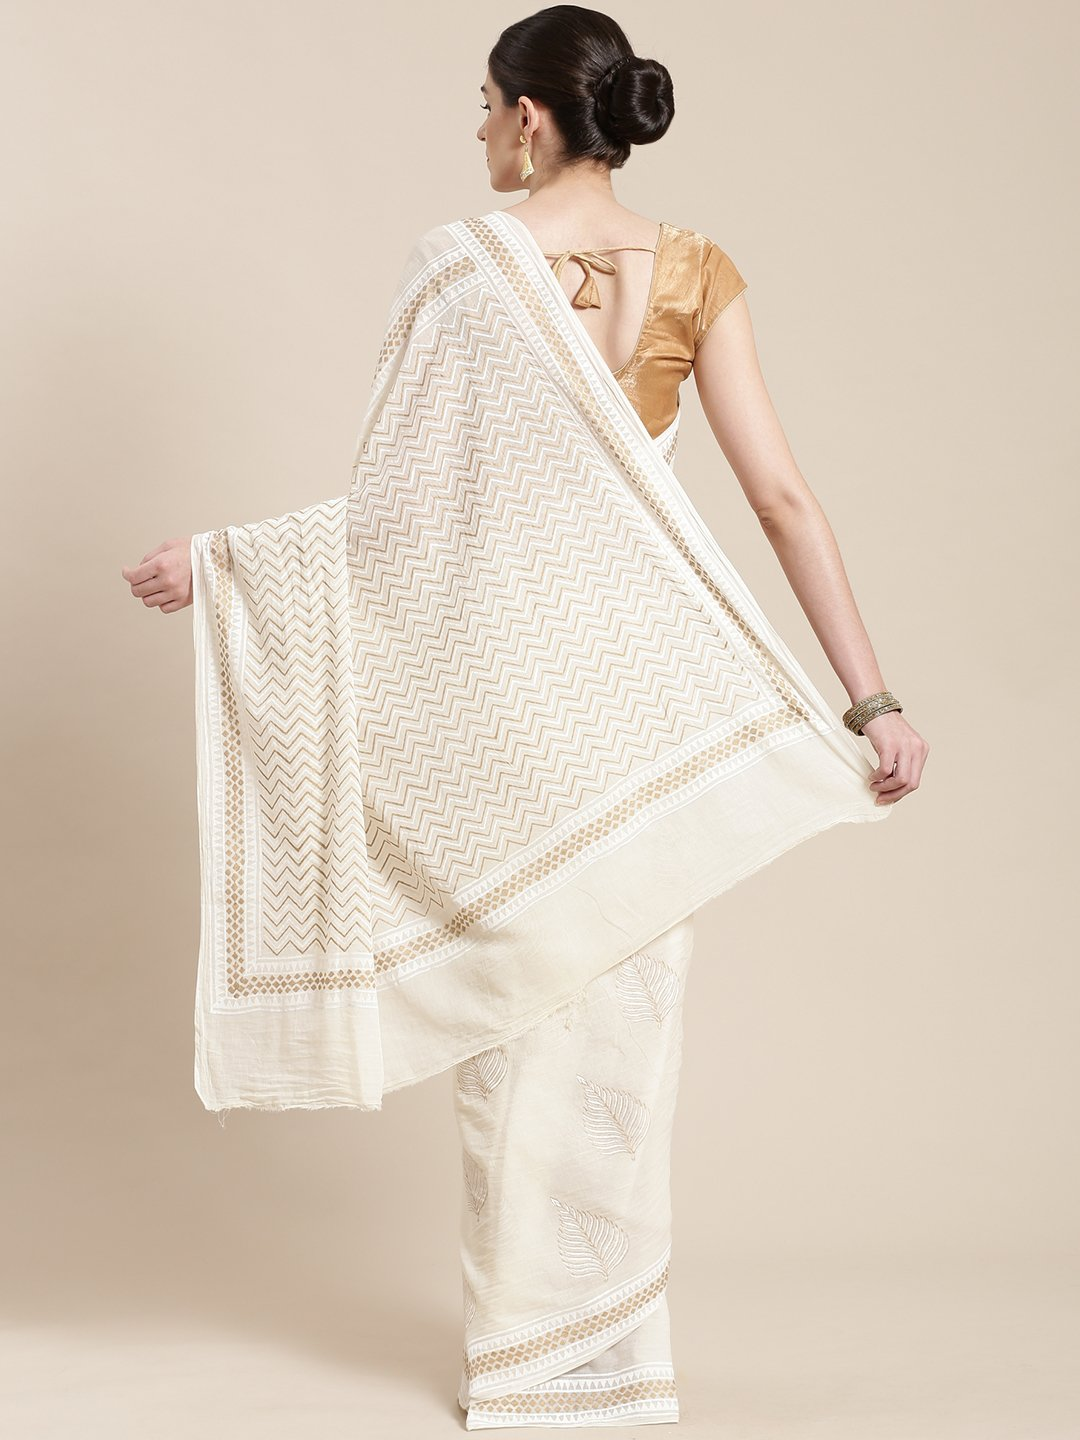 Off-White & Golden Handblock Print Saree-Saree-Kalakari India-HUPASA0006-Cotton, Geographical Indication, Hand Blocks, Hand Crafted, Heritage Prints, Sarees, Sustainable Fabrics-[Linen,Ethnic,wear,Fashionista,Handloom,Handicraft,Indigo,blockprint,block,print,Cotton,Chanderi,Blue, latest,classy,party,bollywood,trendy,summer,style,traditional,formal,elegant,unique,style,hand,block,print, dabu,booti,gift,present,glamorous,affordable,collectible,Sari,Saree,printed, holi, Diwali, birthday, anniversar